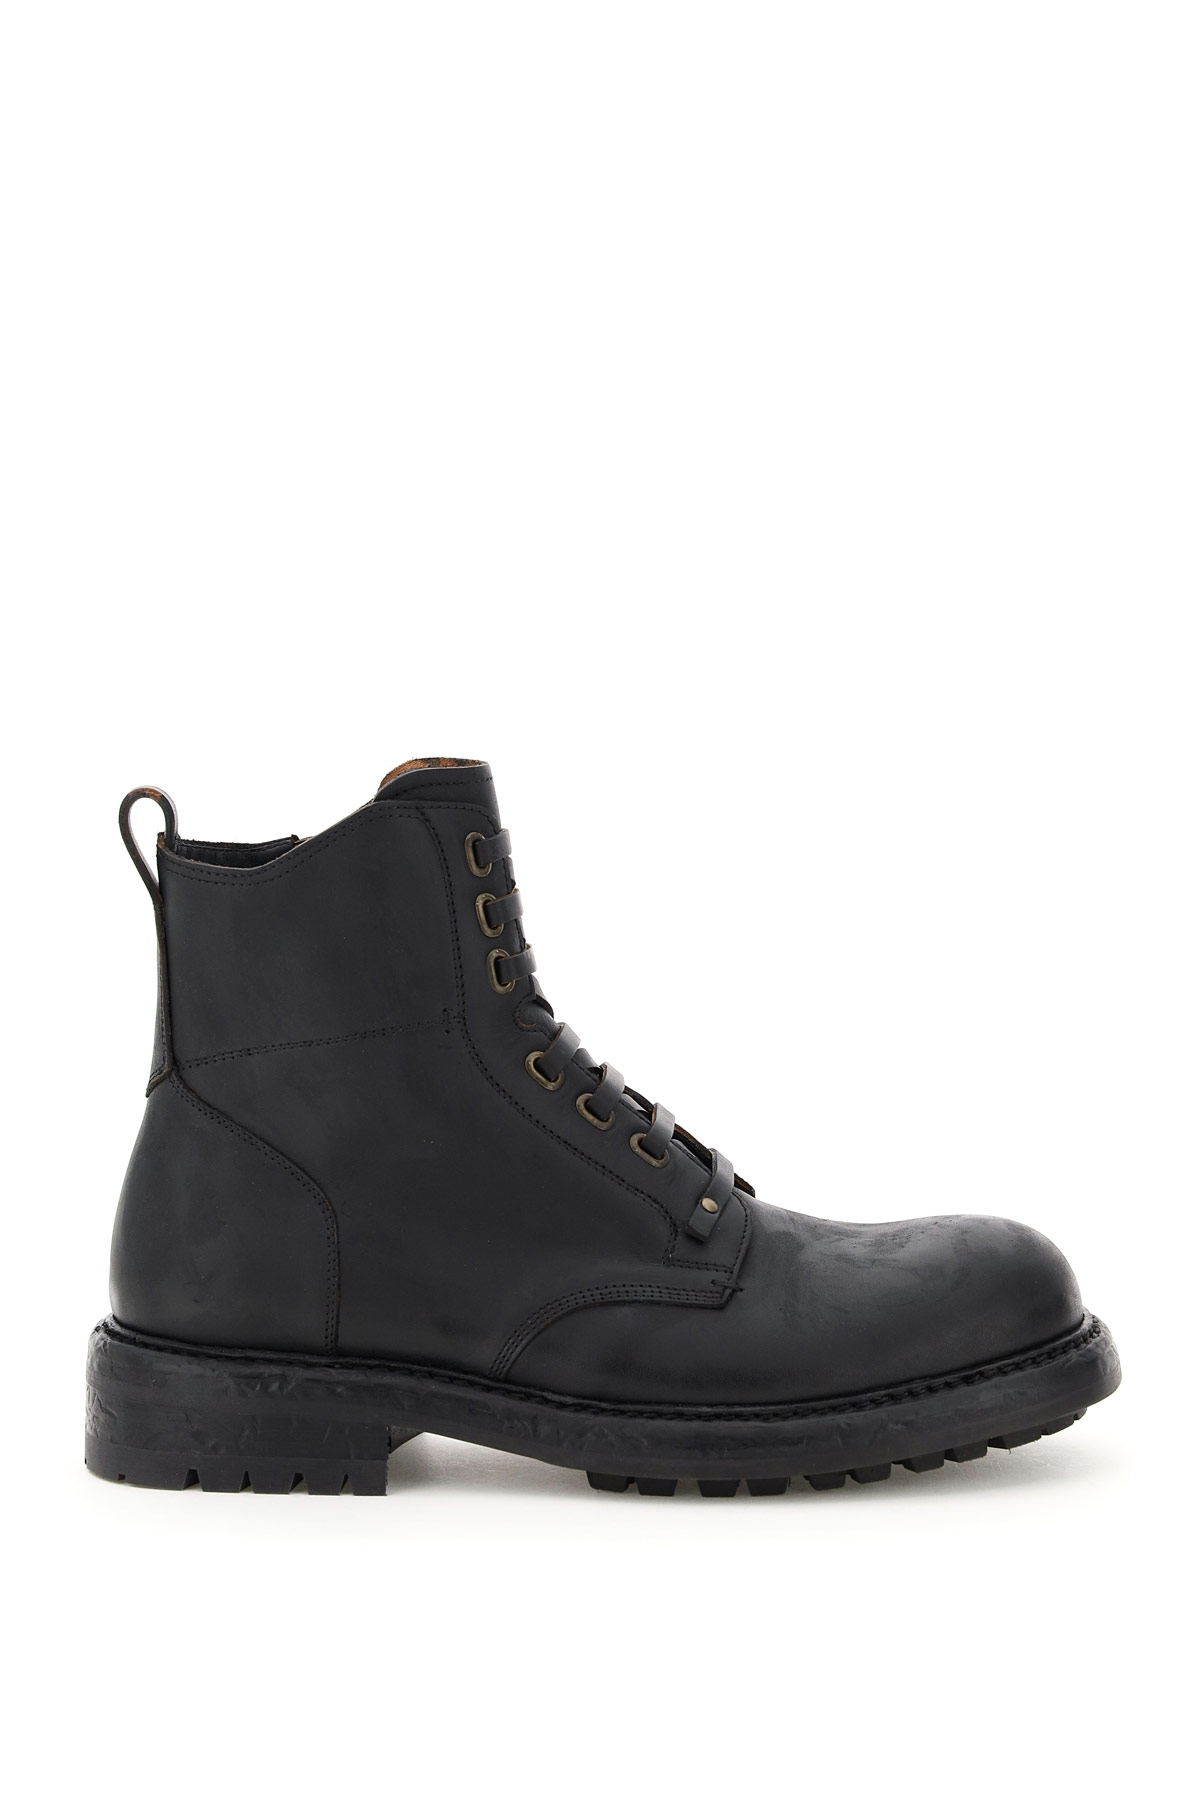 DOLCE & GABBANA BERNINI LACE-UP BOOTS 45 Black Leather